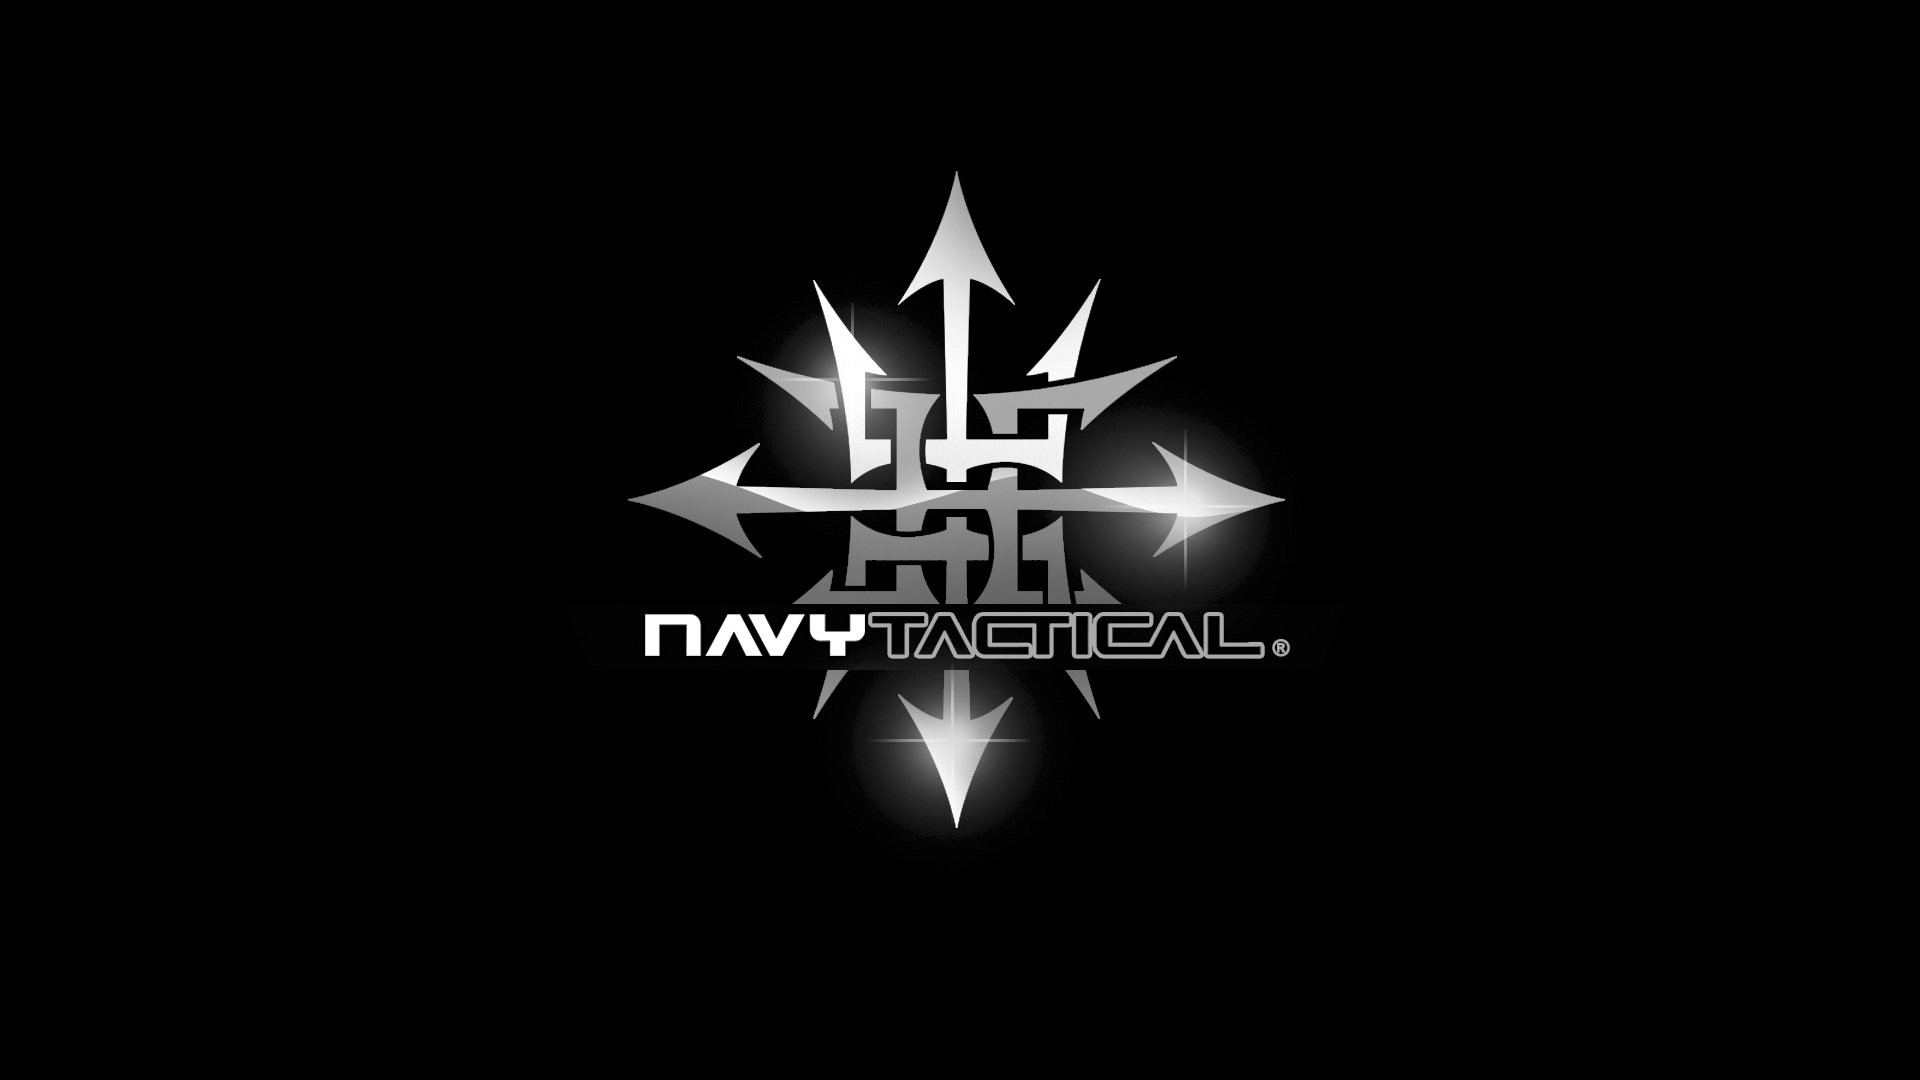 1920x1080 Navy logo military poster (3) wallpaper